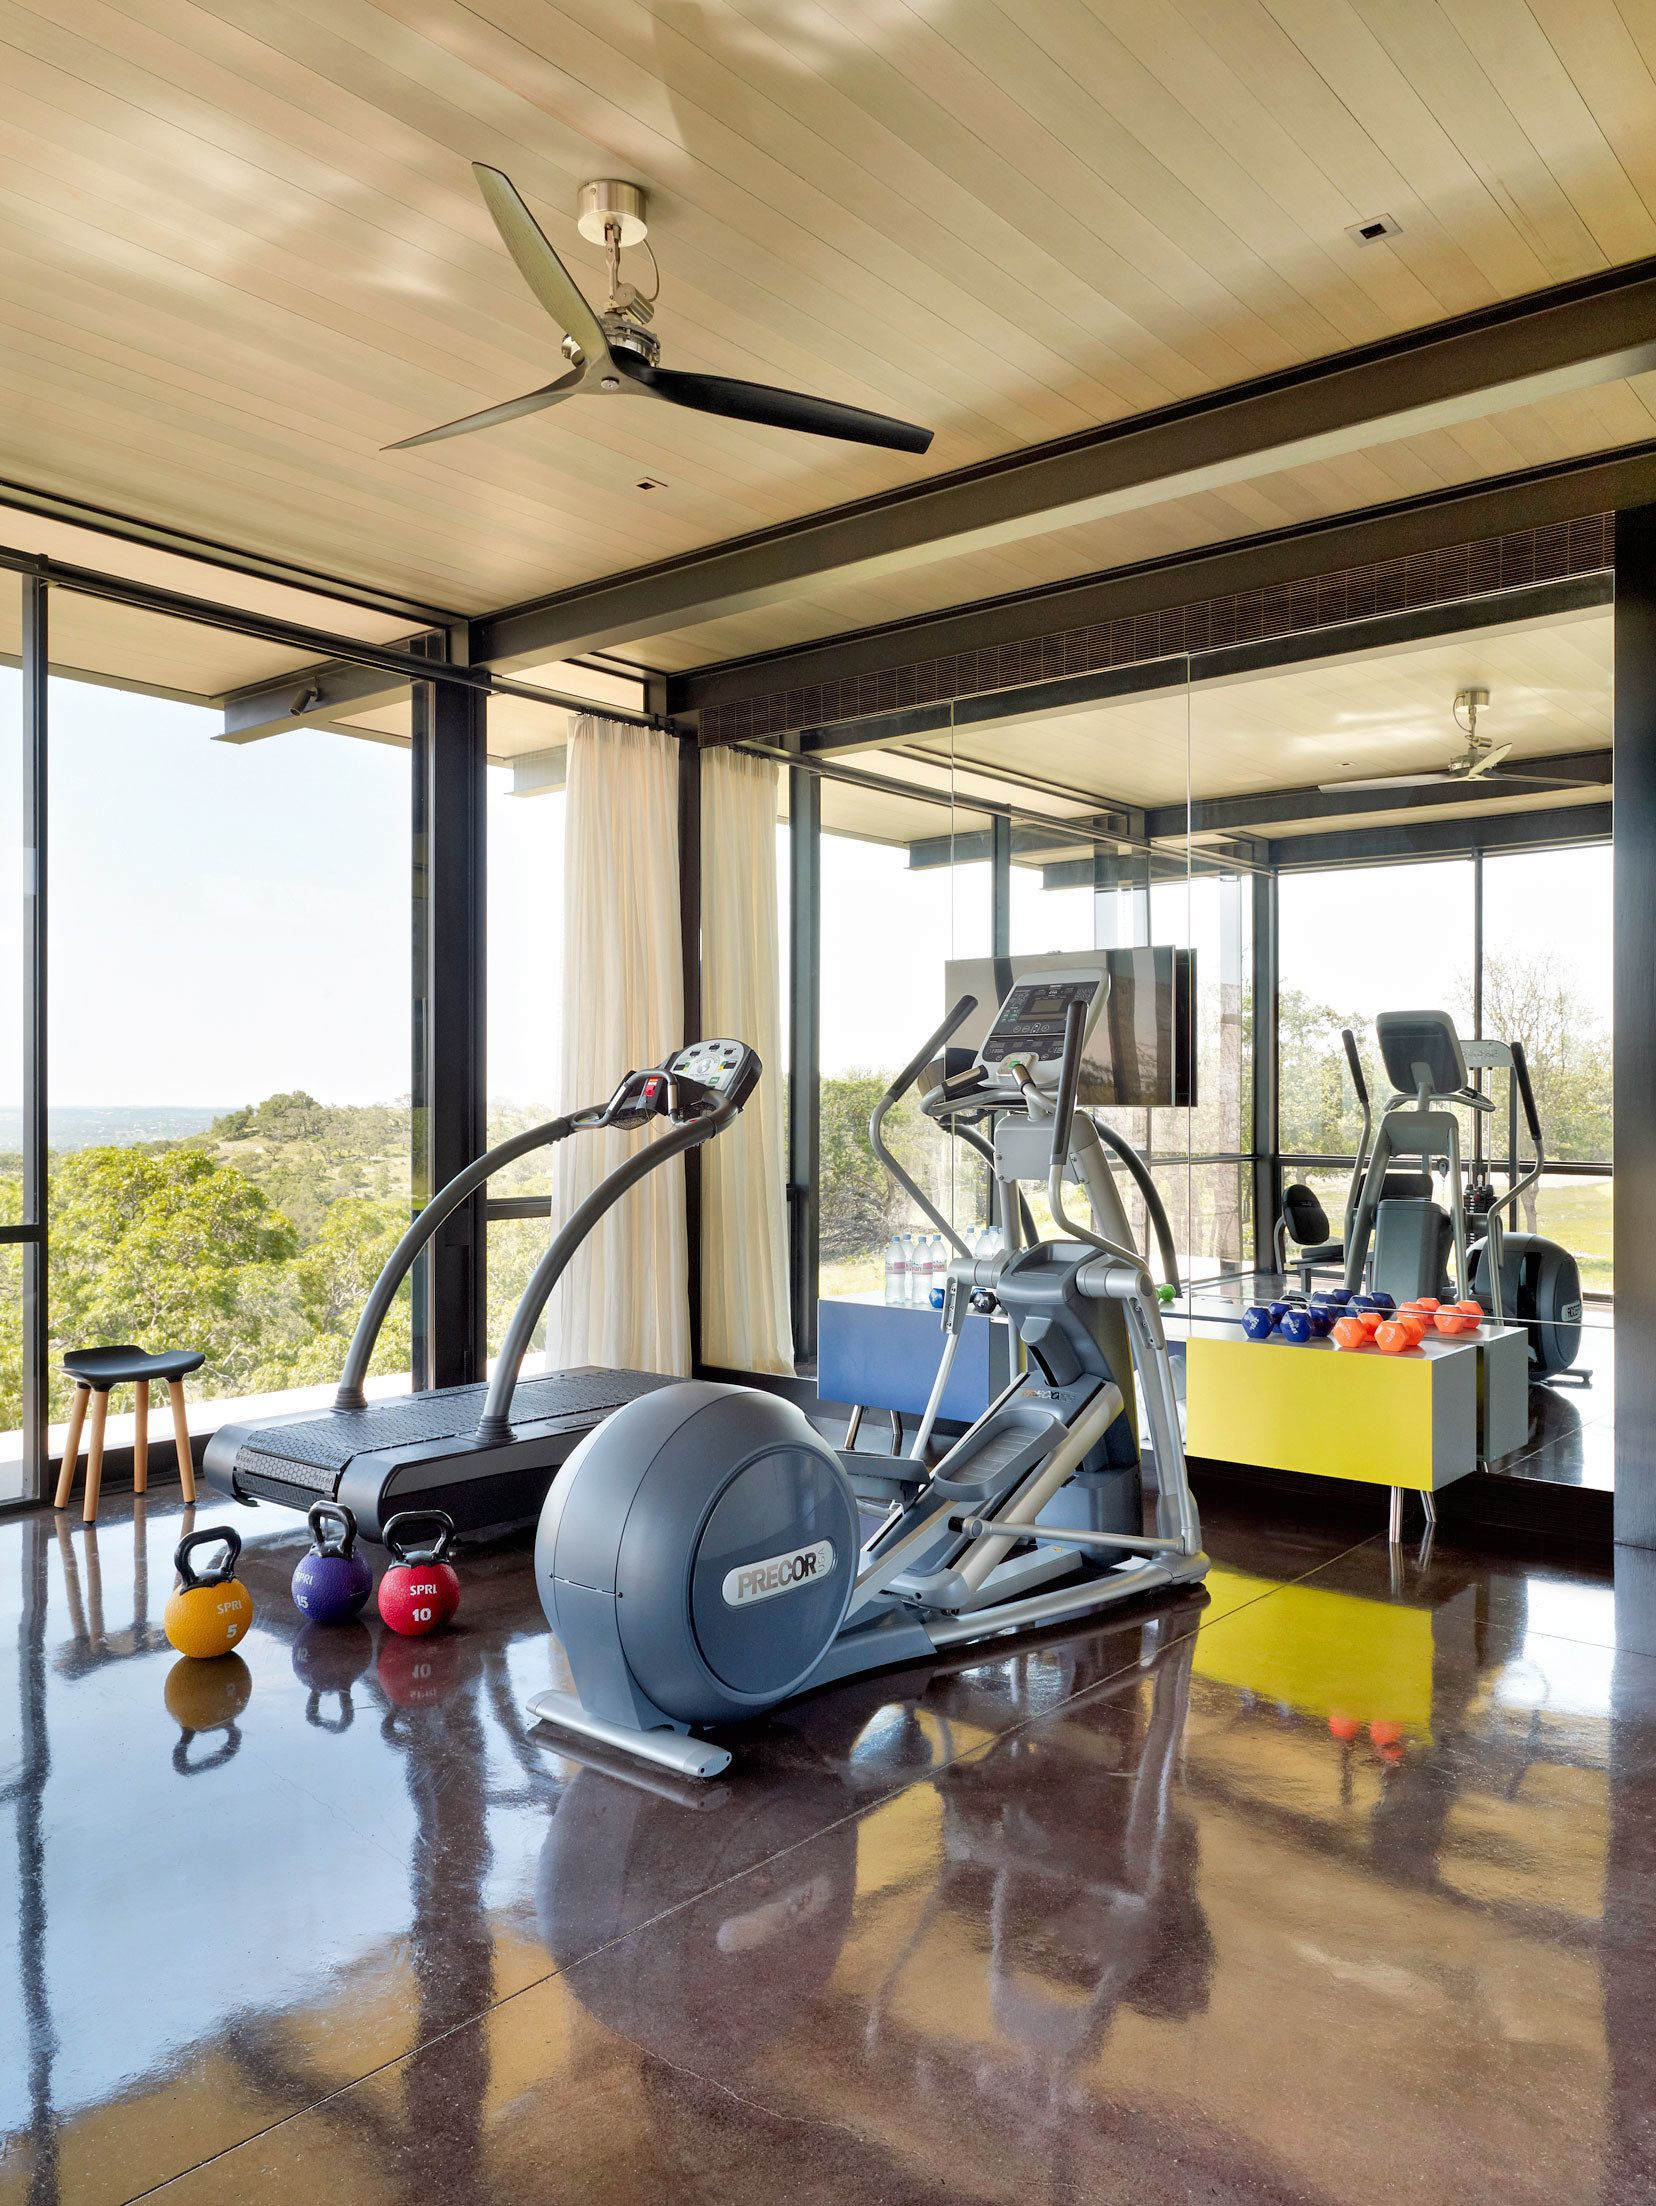 10 Home Gyms That Will Inspire You To Sweat Gym Room At Home Home Gym Design At Home Gym